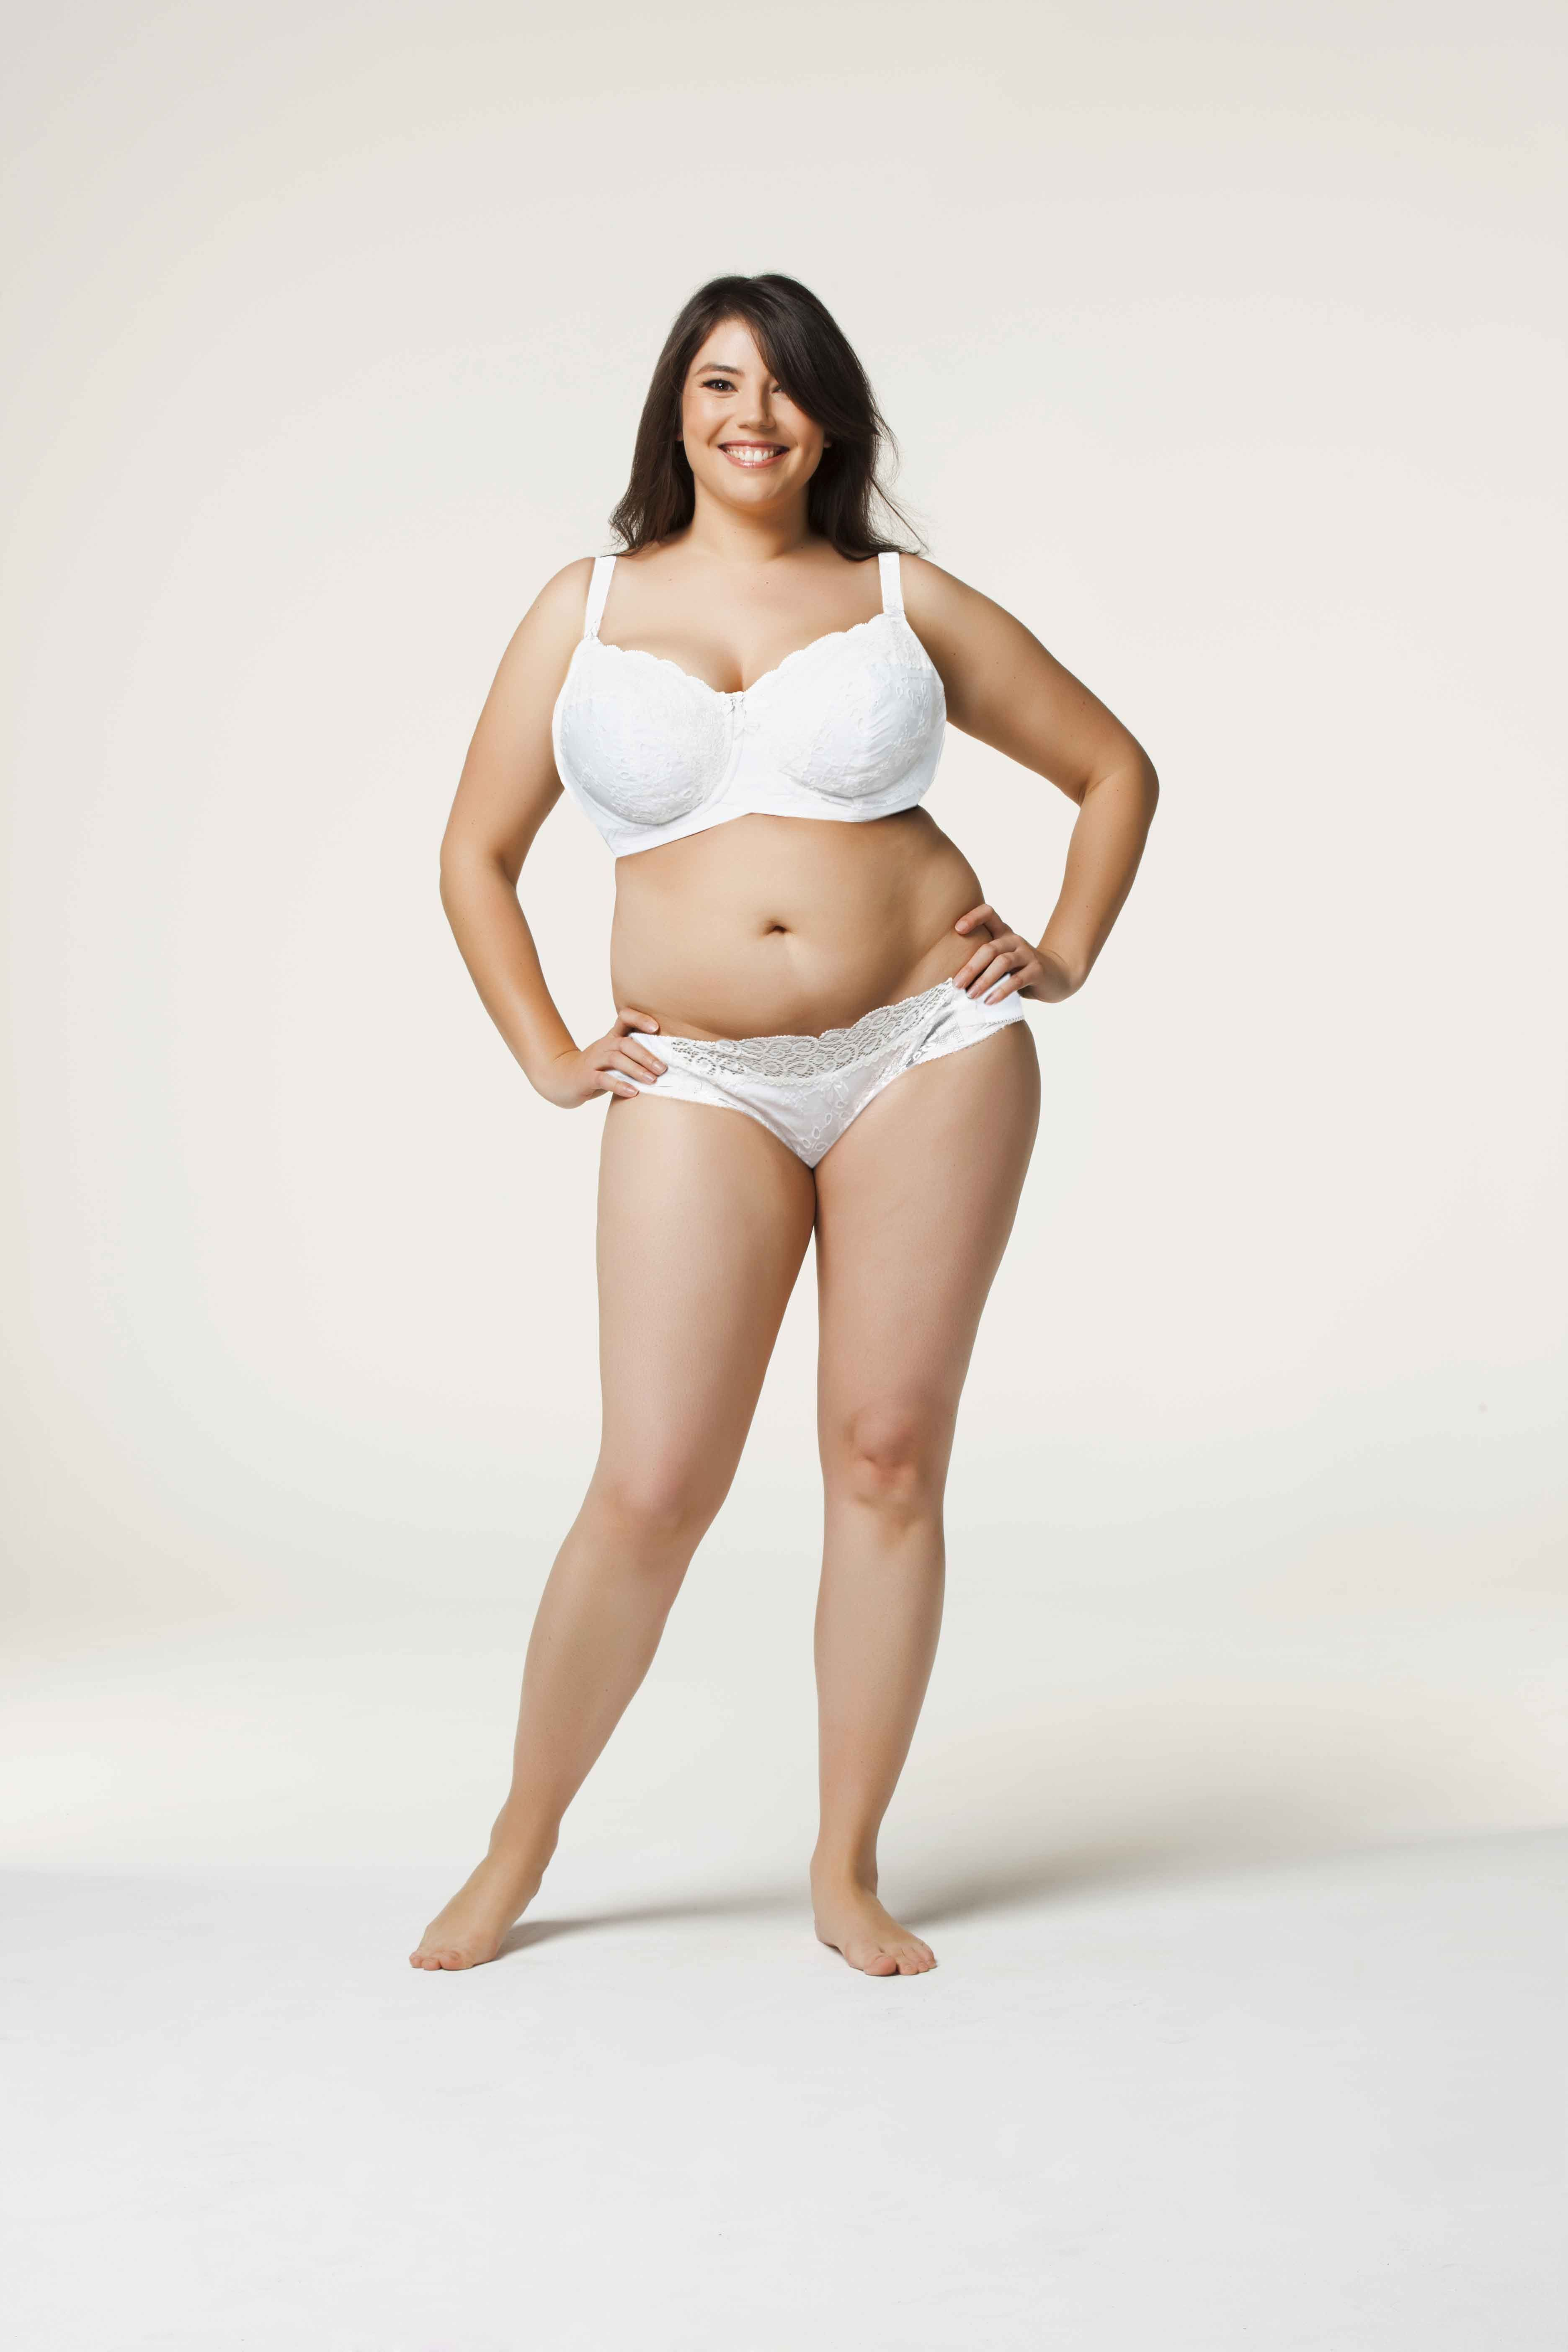 61e333eb92636 Cake Lingerie White Chocolate flexible wired maternity nursing bra is  available in sizes 32C-40K (US)